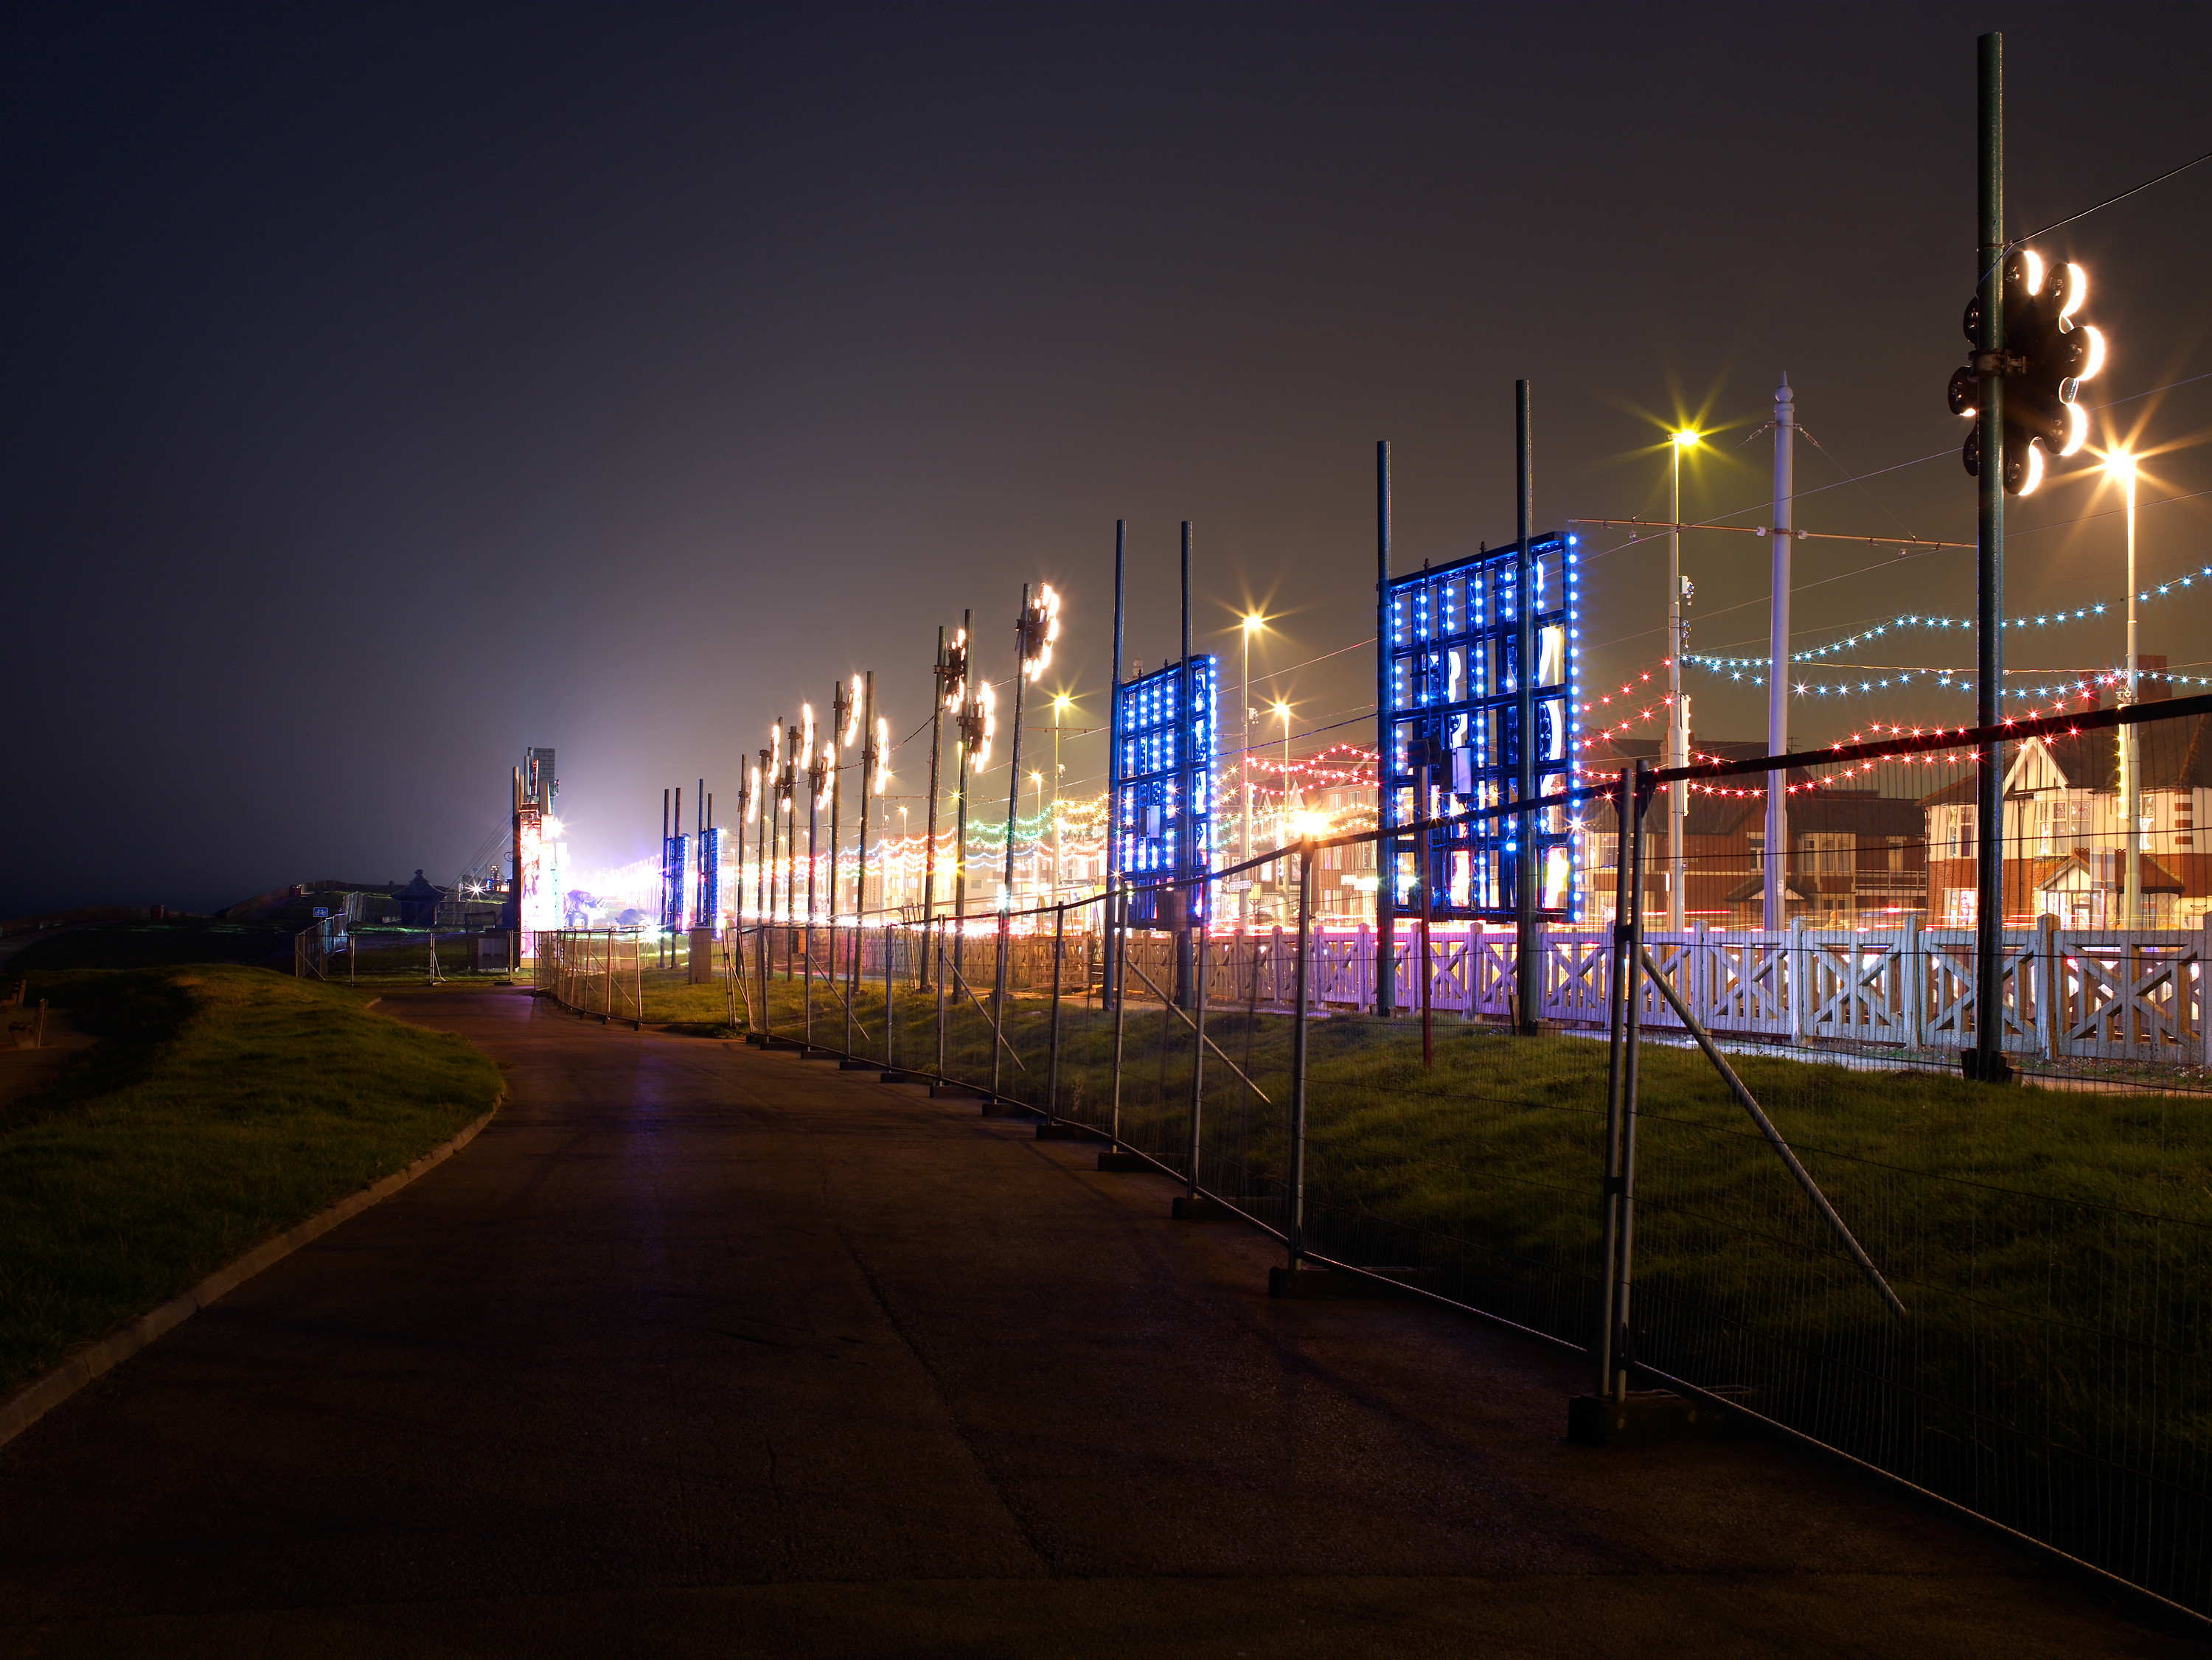 Blackpool / Behind The Lights 1